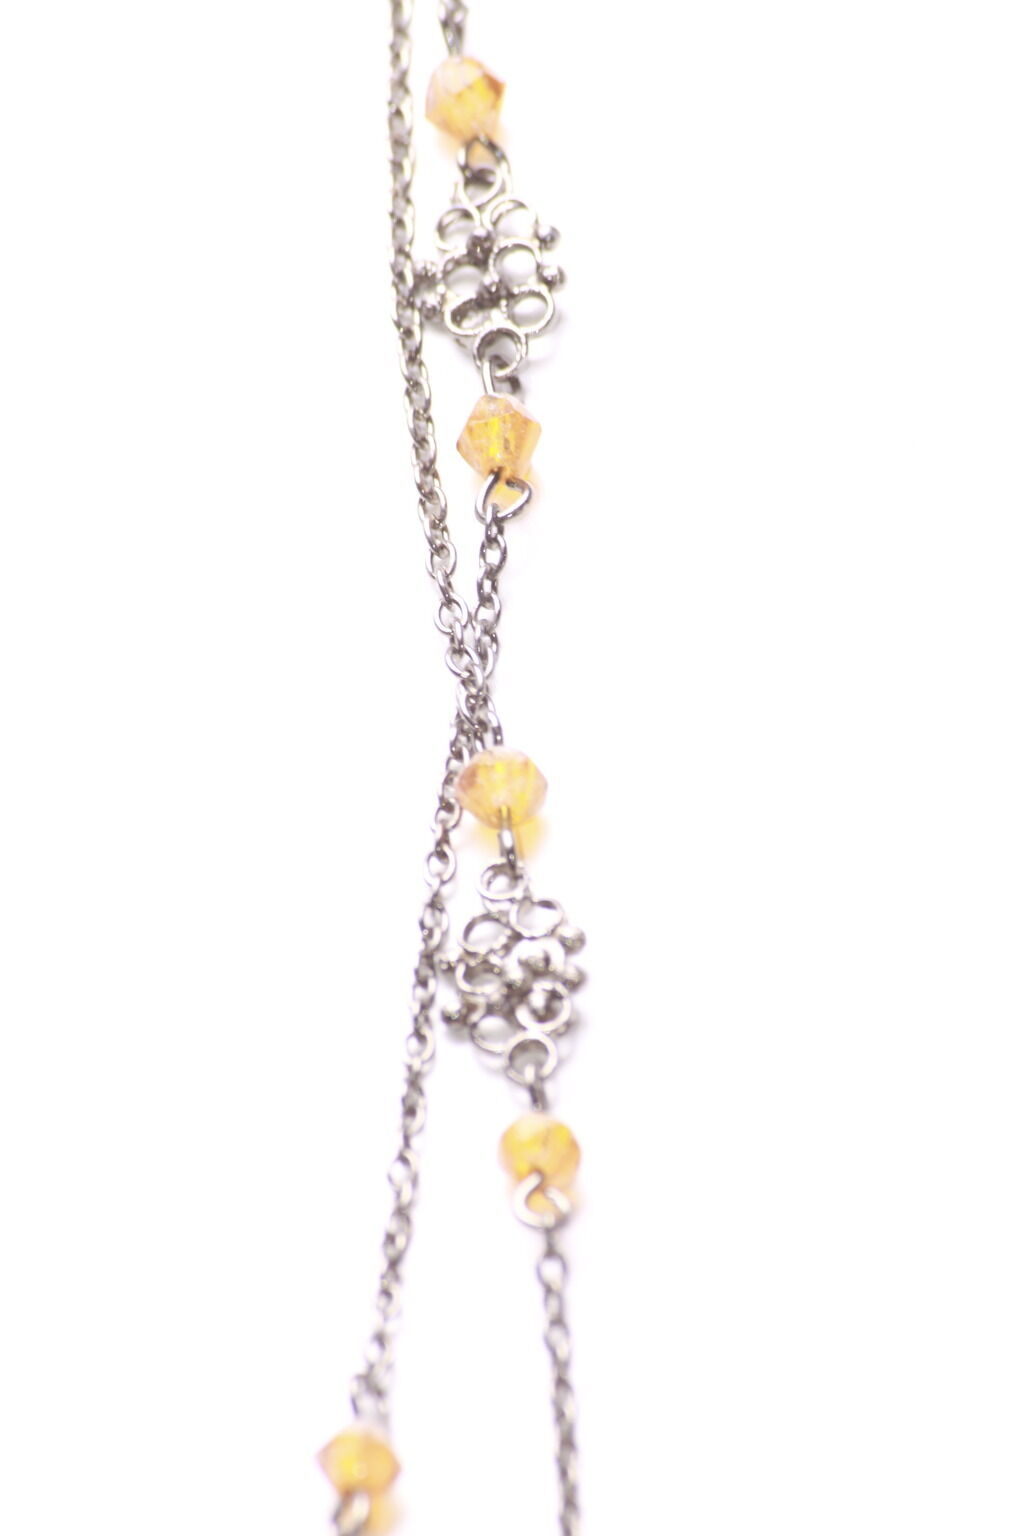 Modeschmuck Zx179 Gorgeous Rustic Chrome Yellow Crystal Beads Long Metal Necklace Dailyrasta